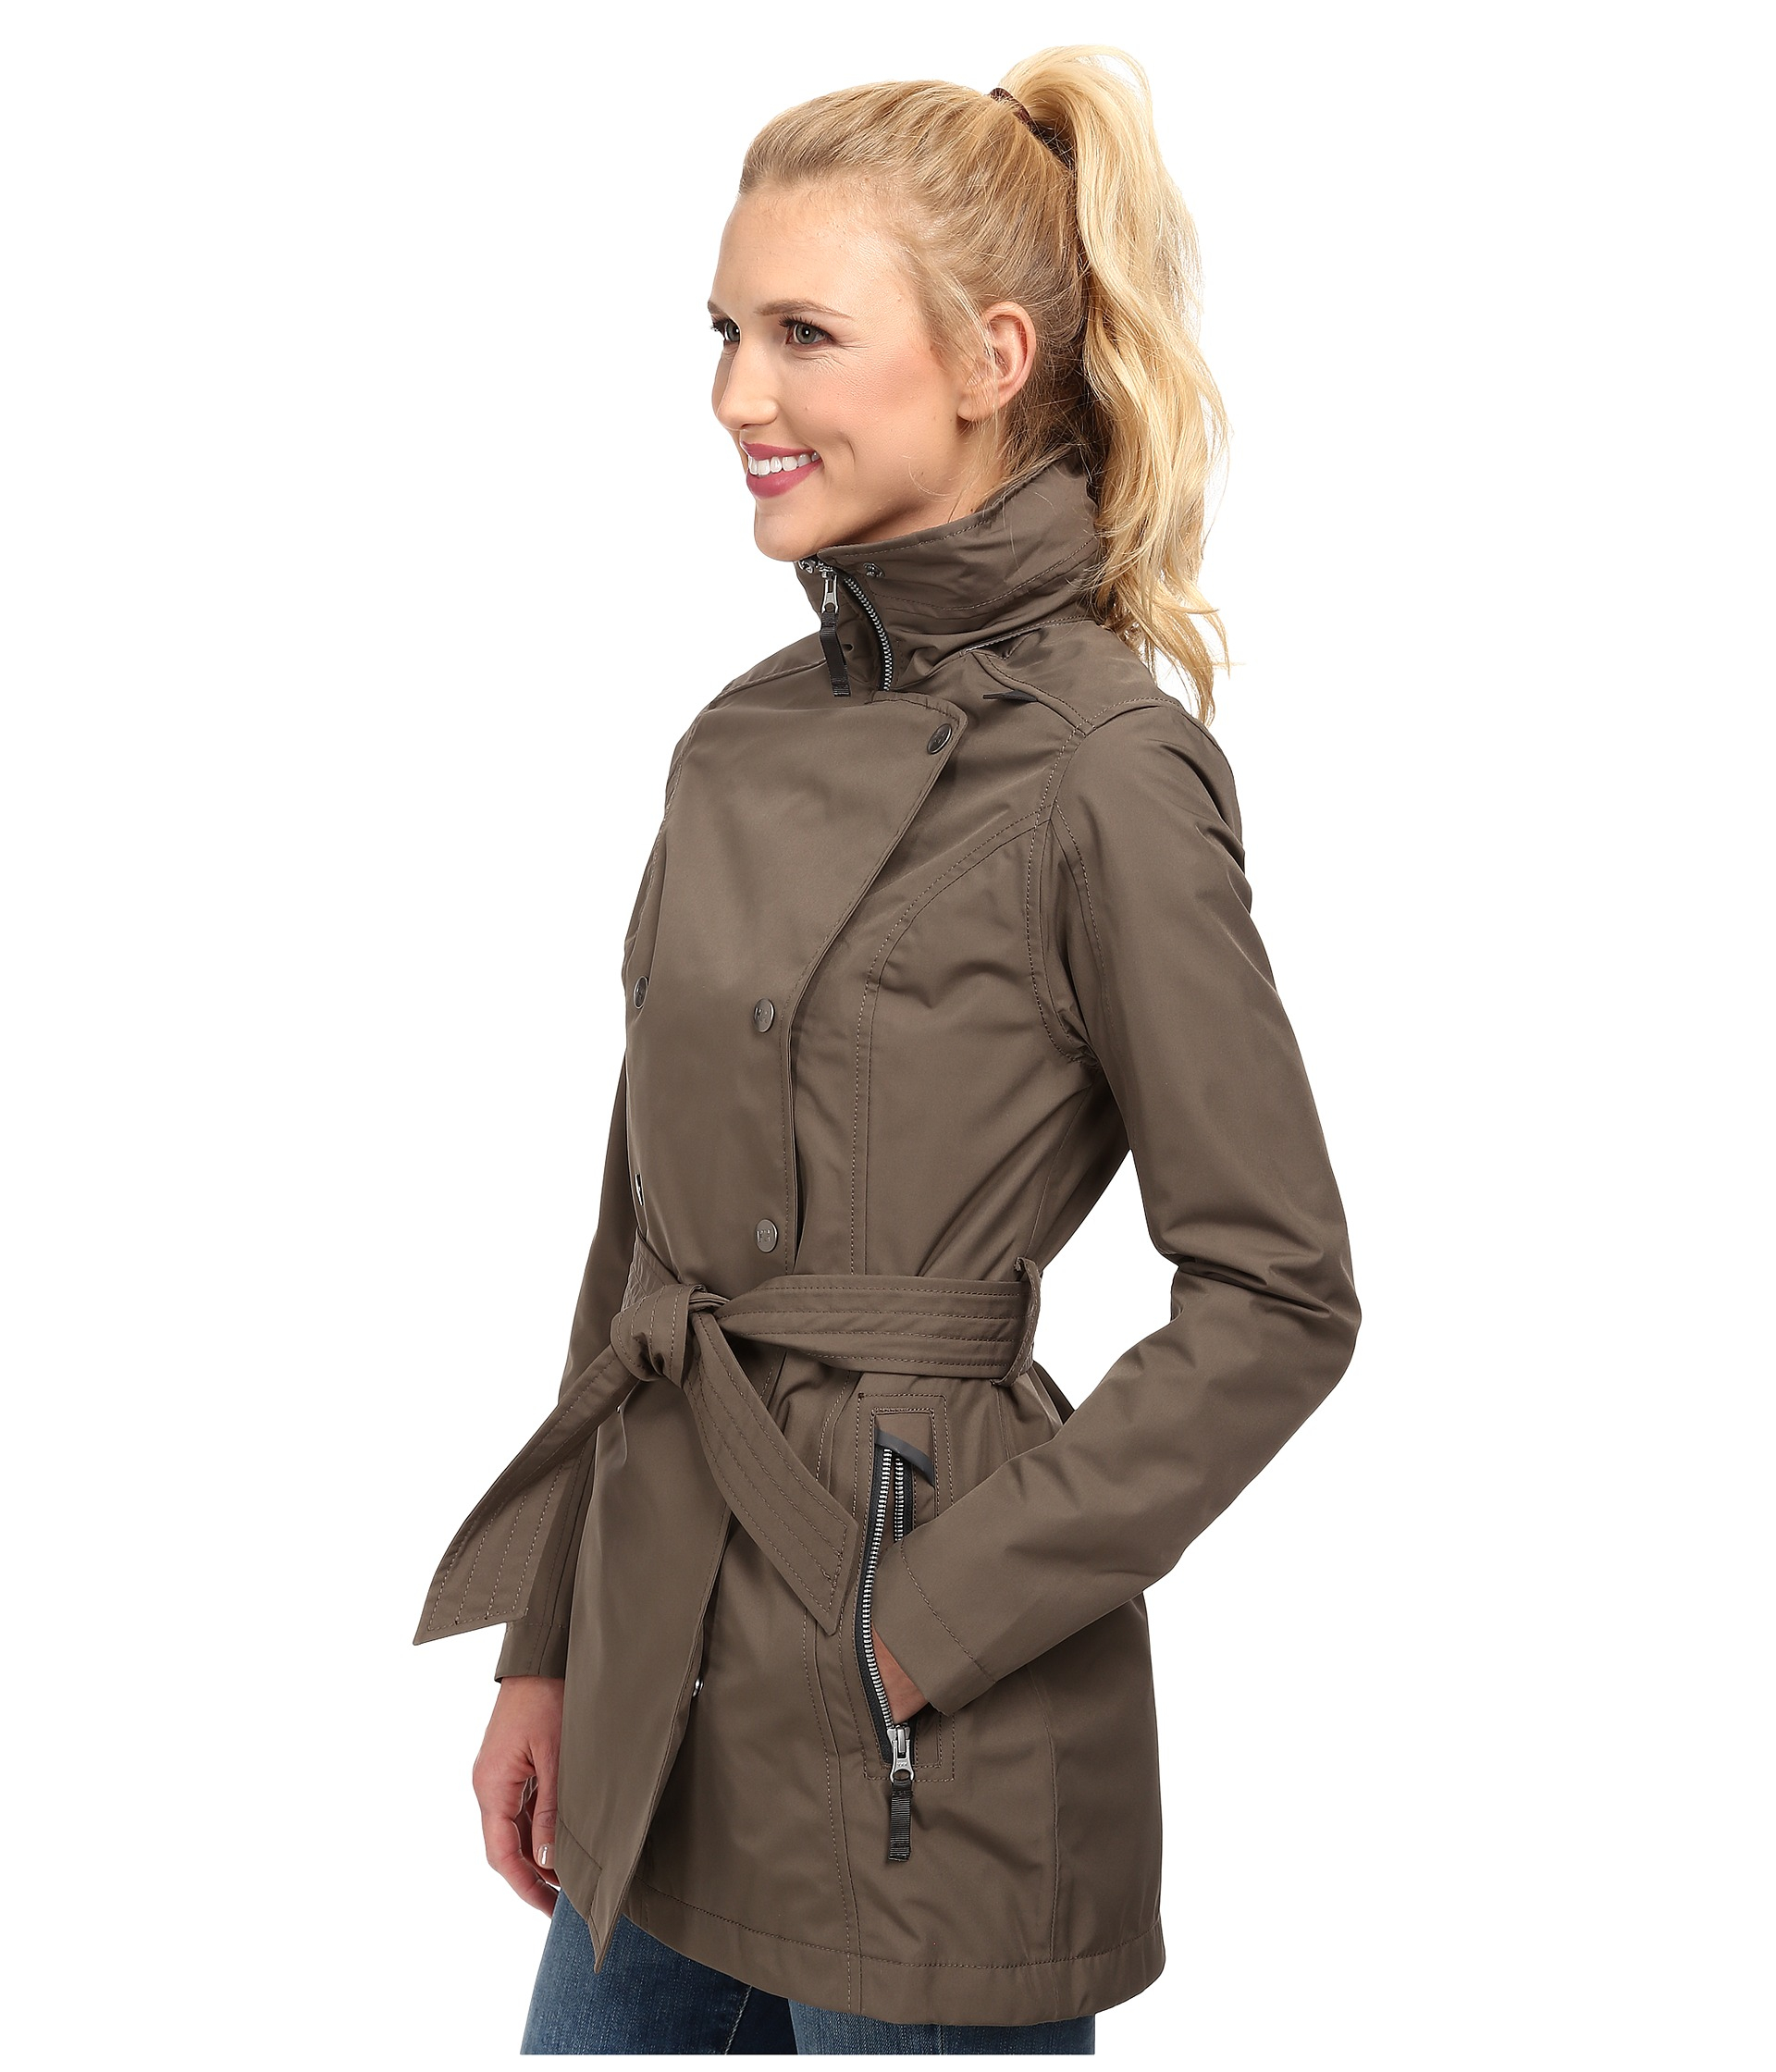 649ceffed3c Lyst - Helly Hansen Welsey Trench in Green